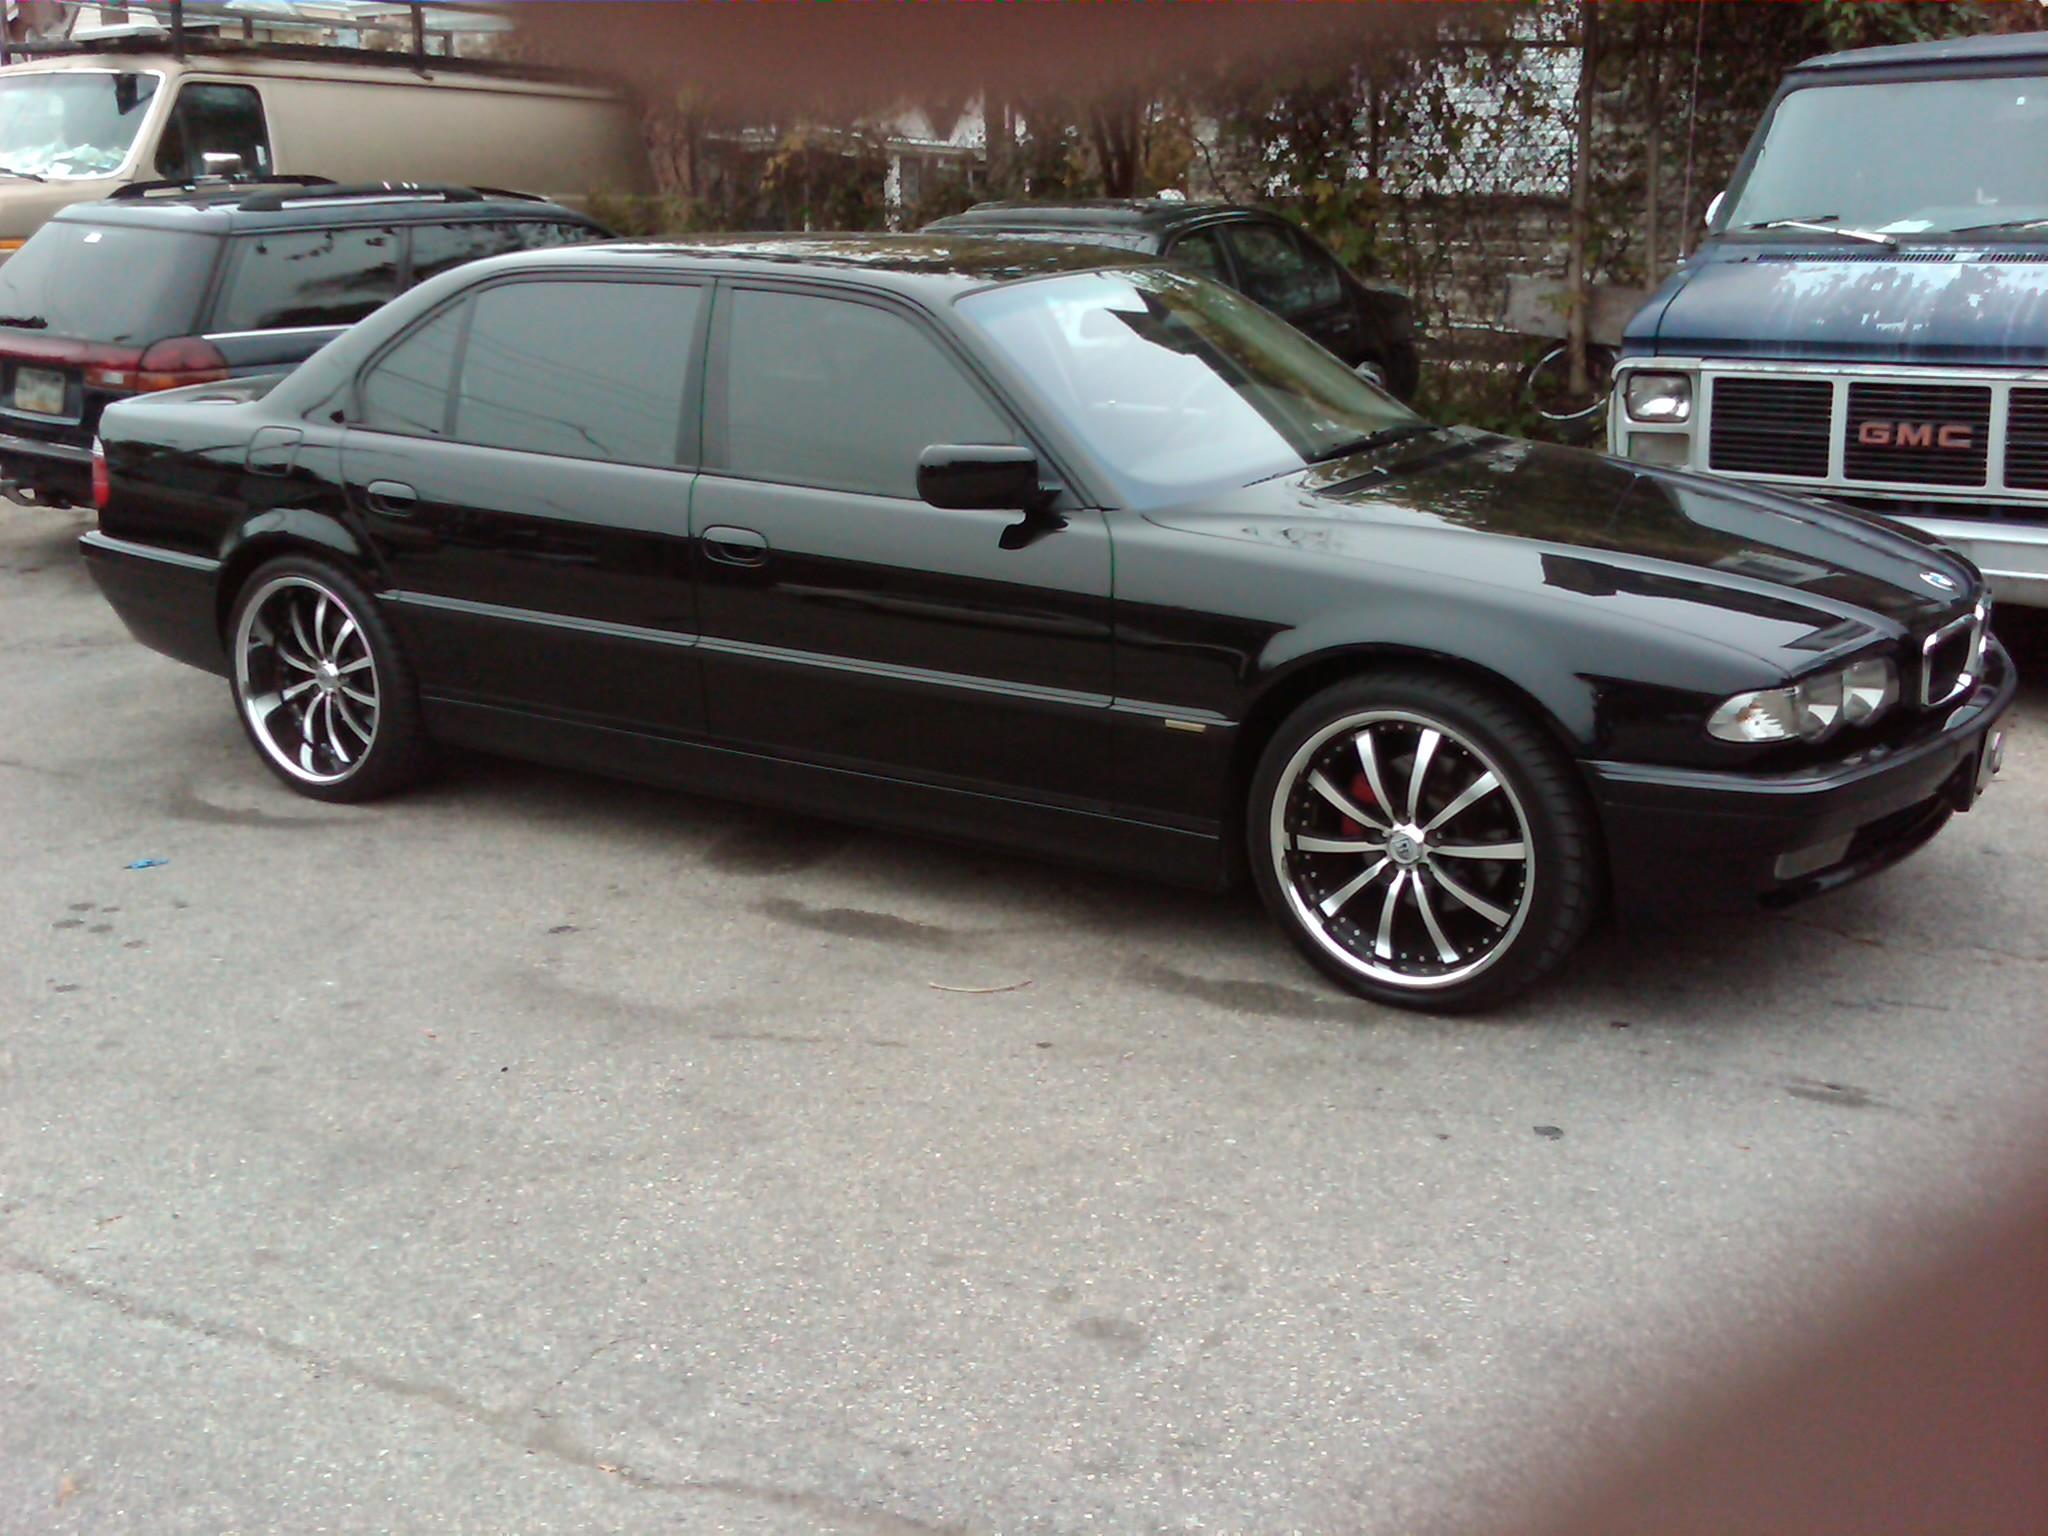 BMW 7 series 750i 2001 photo - 11